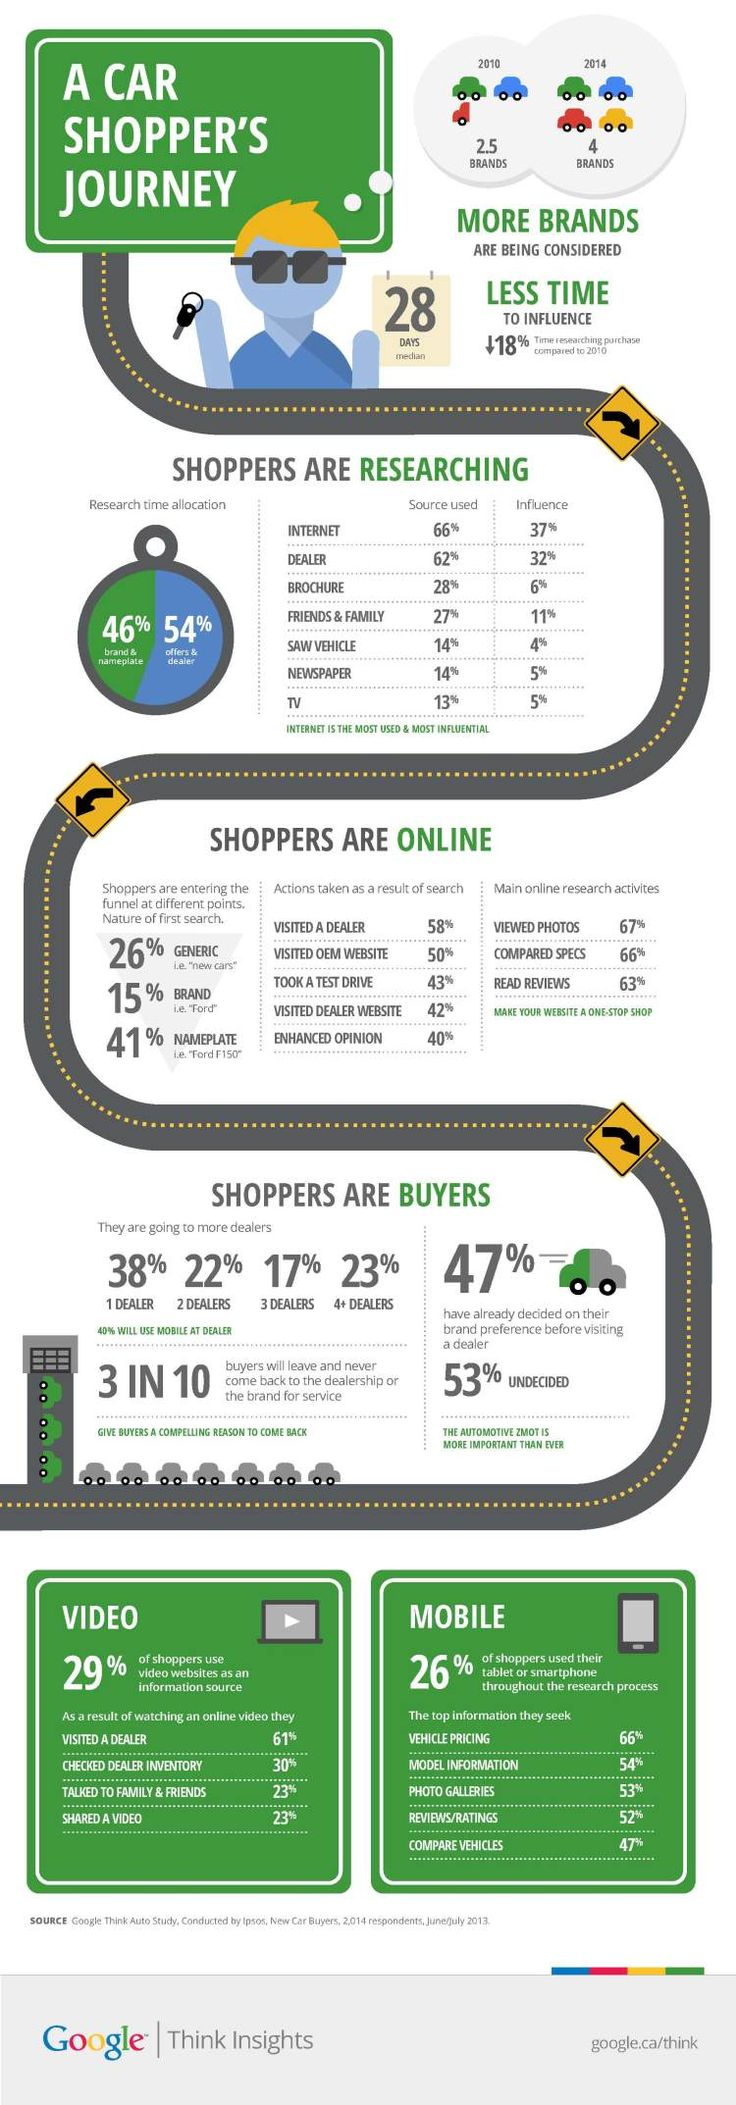 AdWords store visits data proves ... - services.google.com